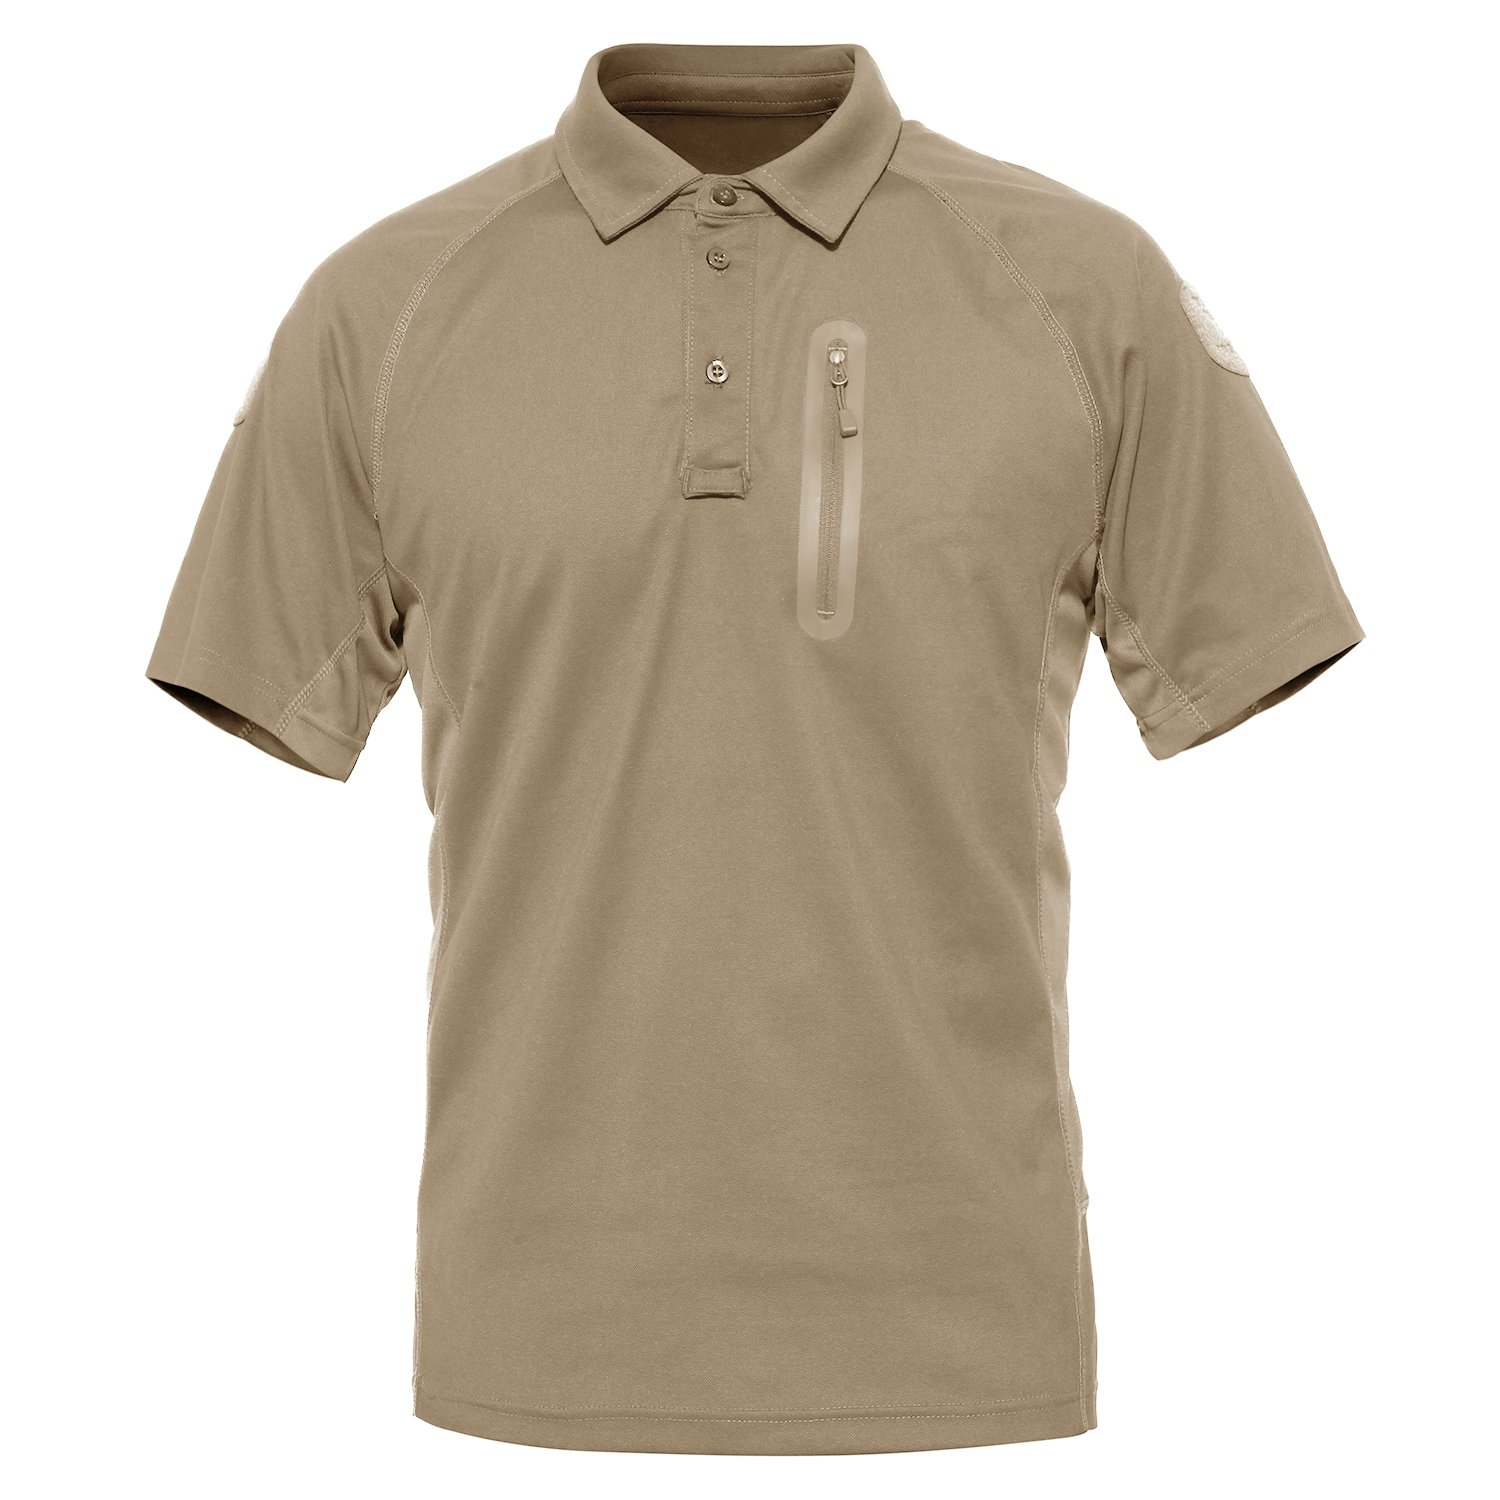 MAGCOMSEN Mens Outdoor Lightweight Breathable Short Sleeve Combat Polo T-Shirt MCSPL13-35